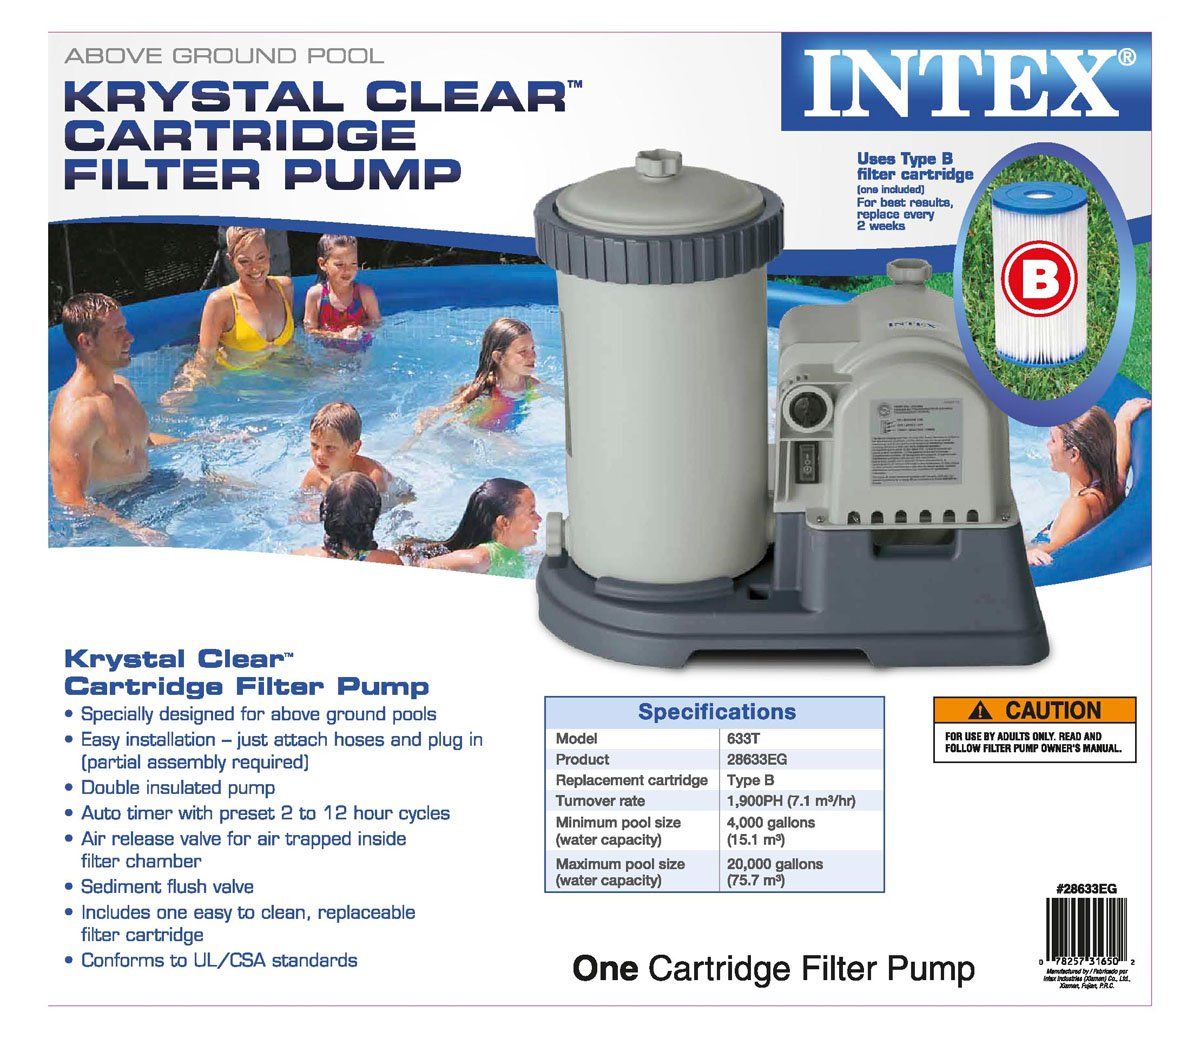 Intex Krystal Clear Pool Filter Cartridge Pump & Plunger Valves Gaskets (2  Pack) - Walmart.com